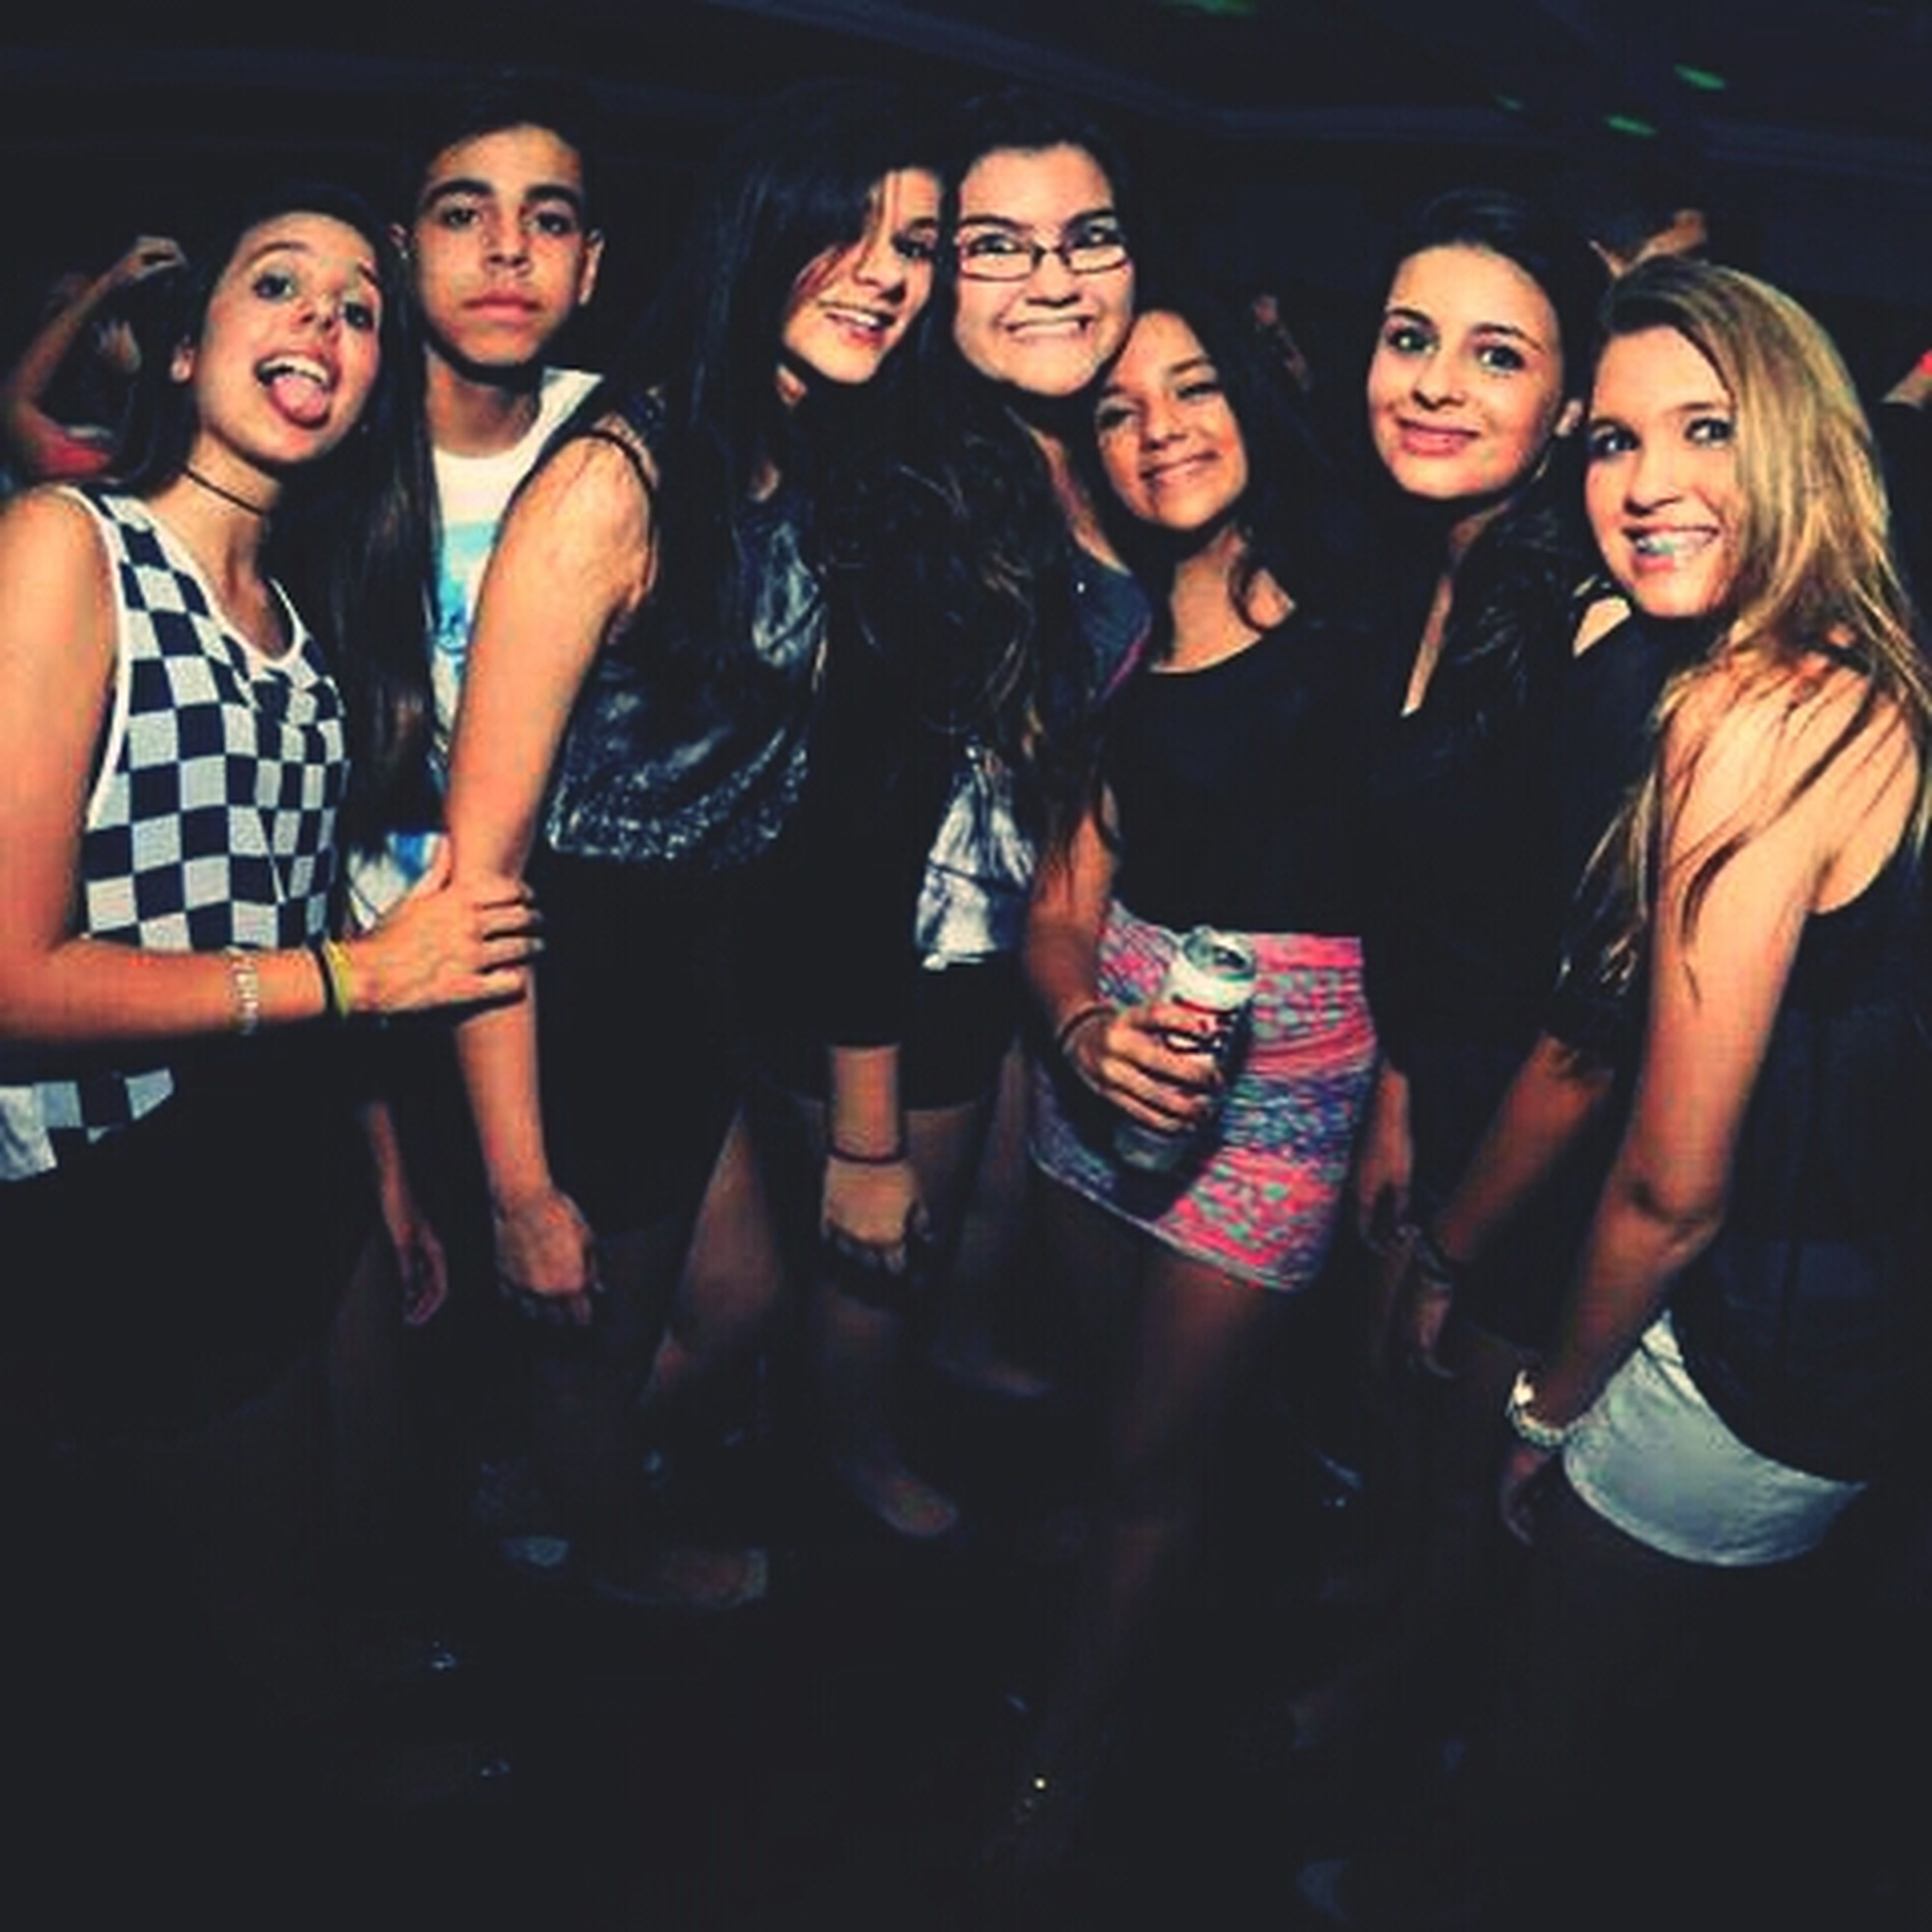 Partying Young, Wild And Free Girls Fun